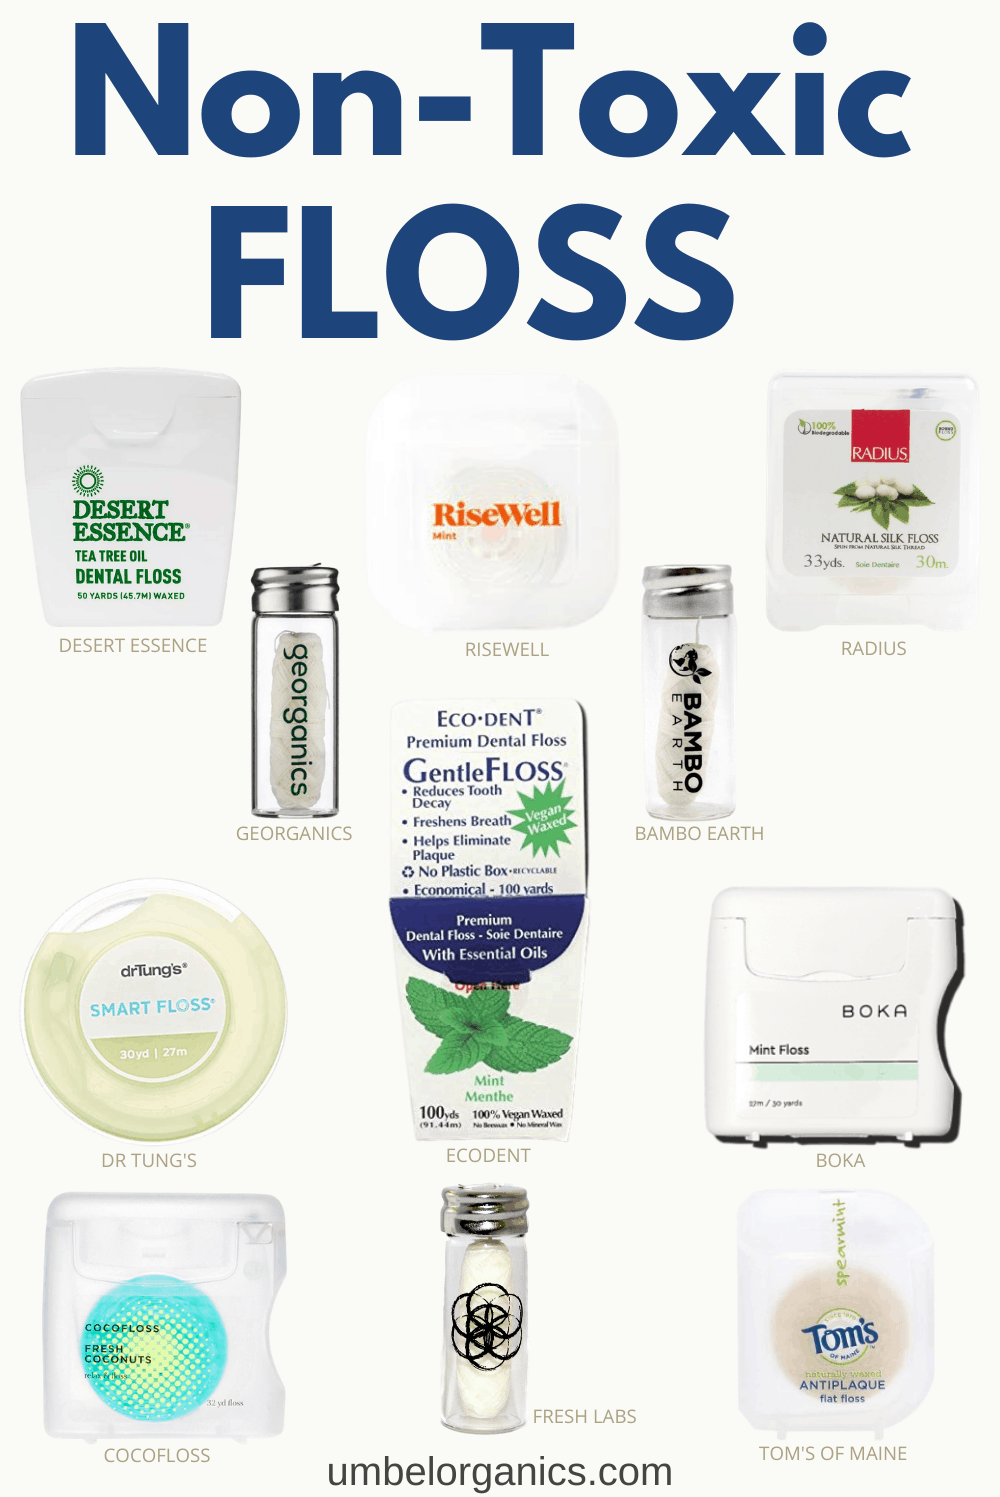 11 brands of non-toxic dental floss